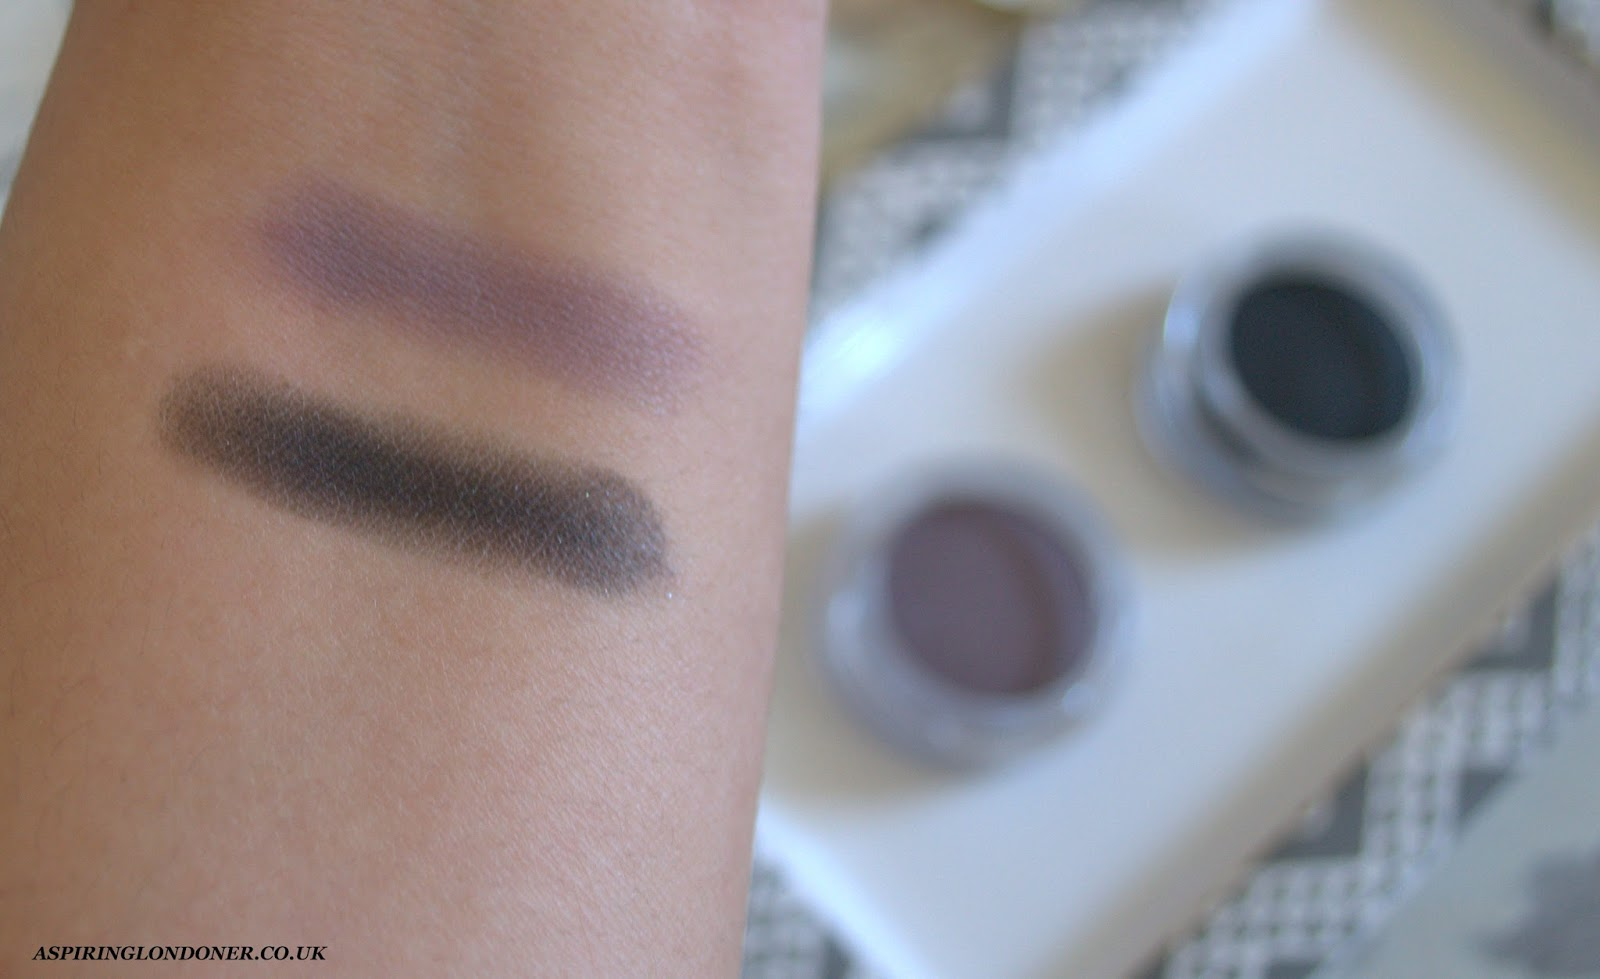 Clarins Ombre Matte Eyeshadows Heather, Carbon Swatch - Aspiring Londoner